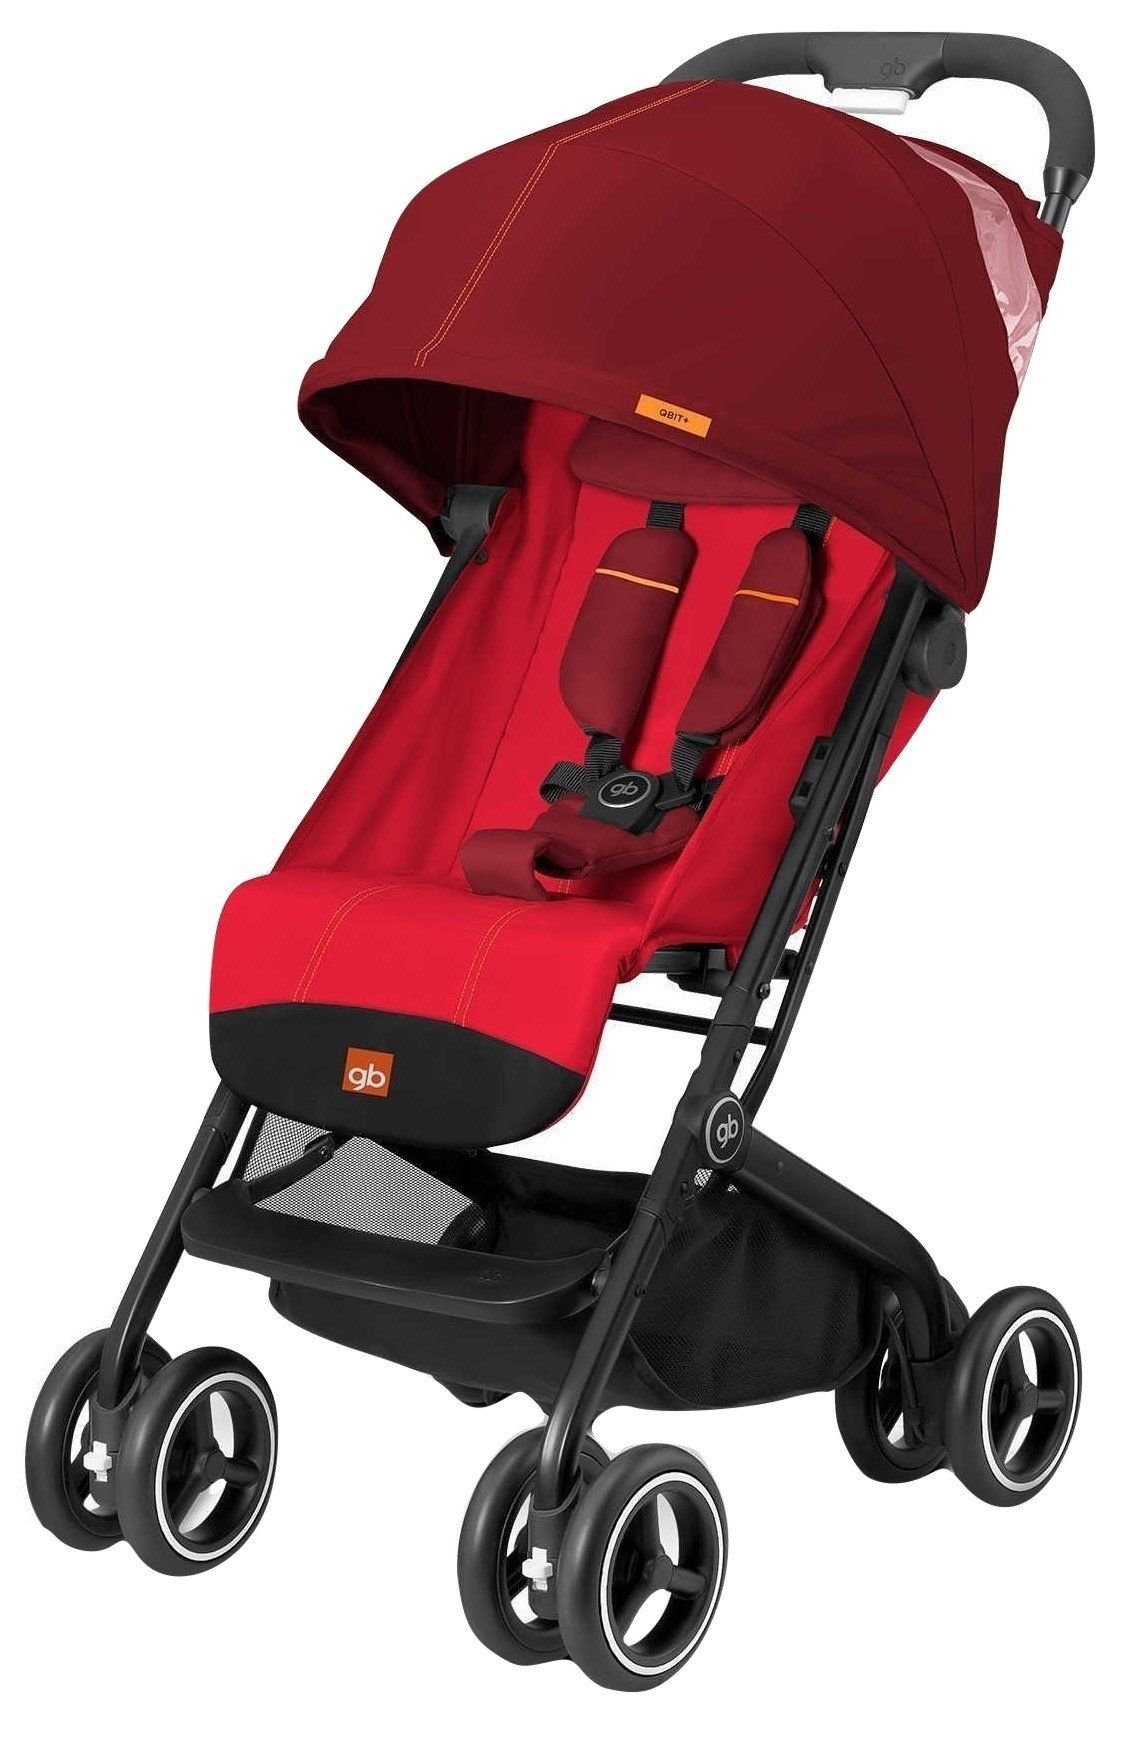 GB QBit Plus (Dragonfire Red) Travel stroller, Baby